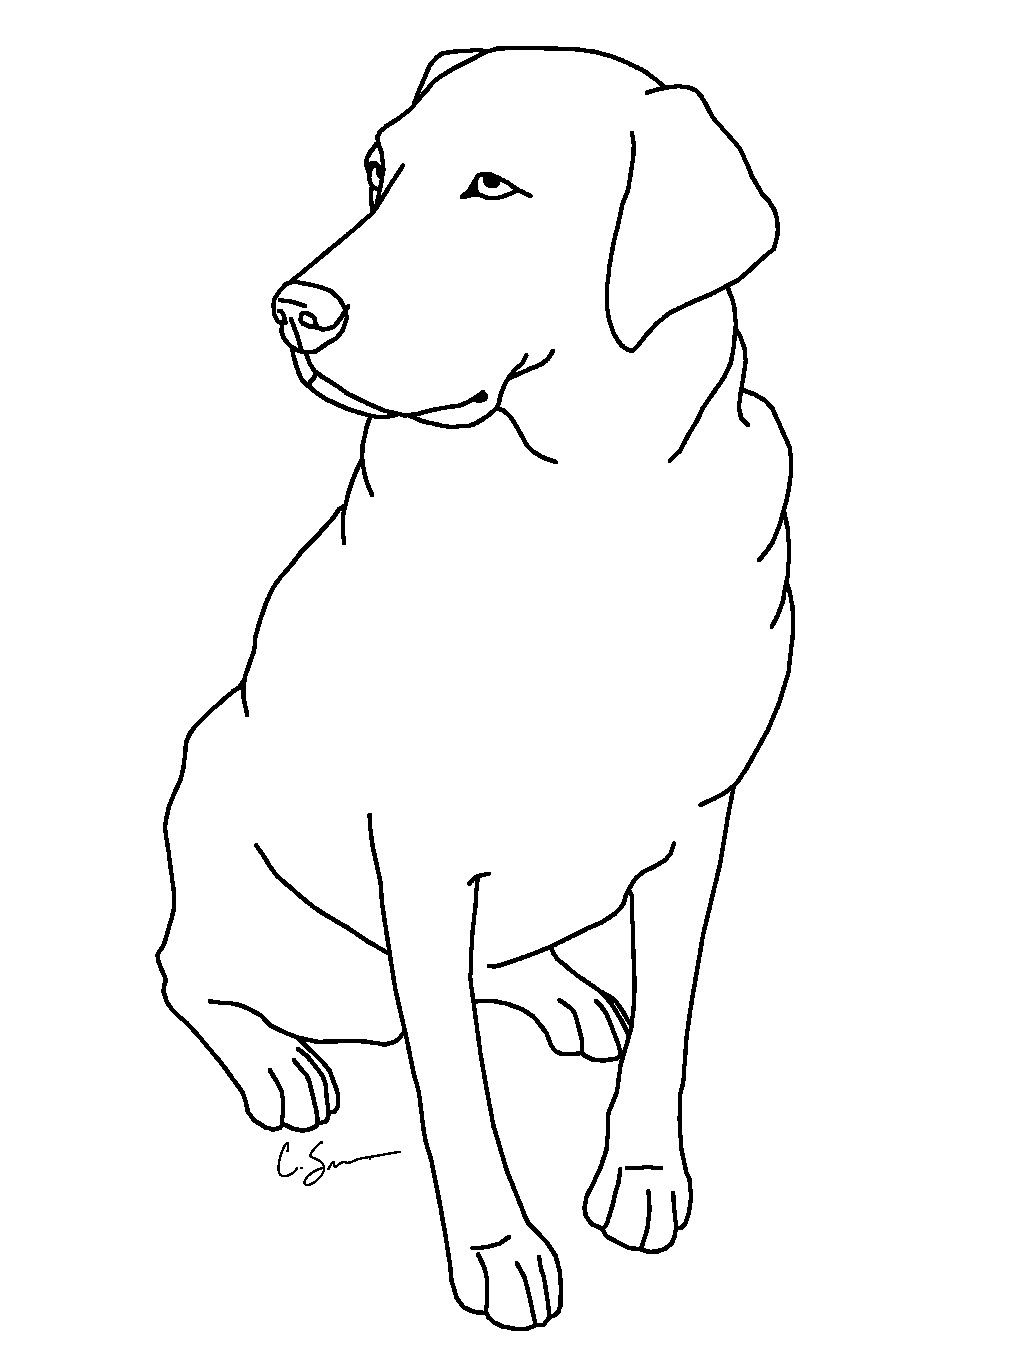 Printable Dog Coloring Pages Ideas For Kids